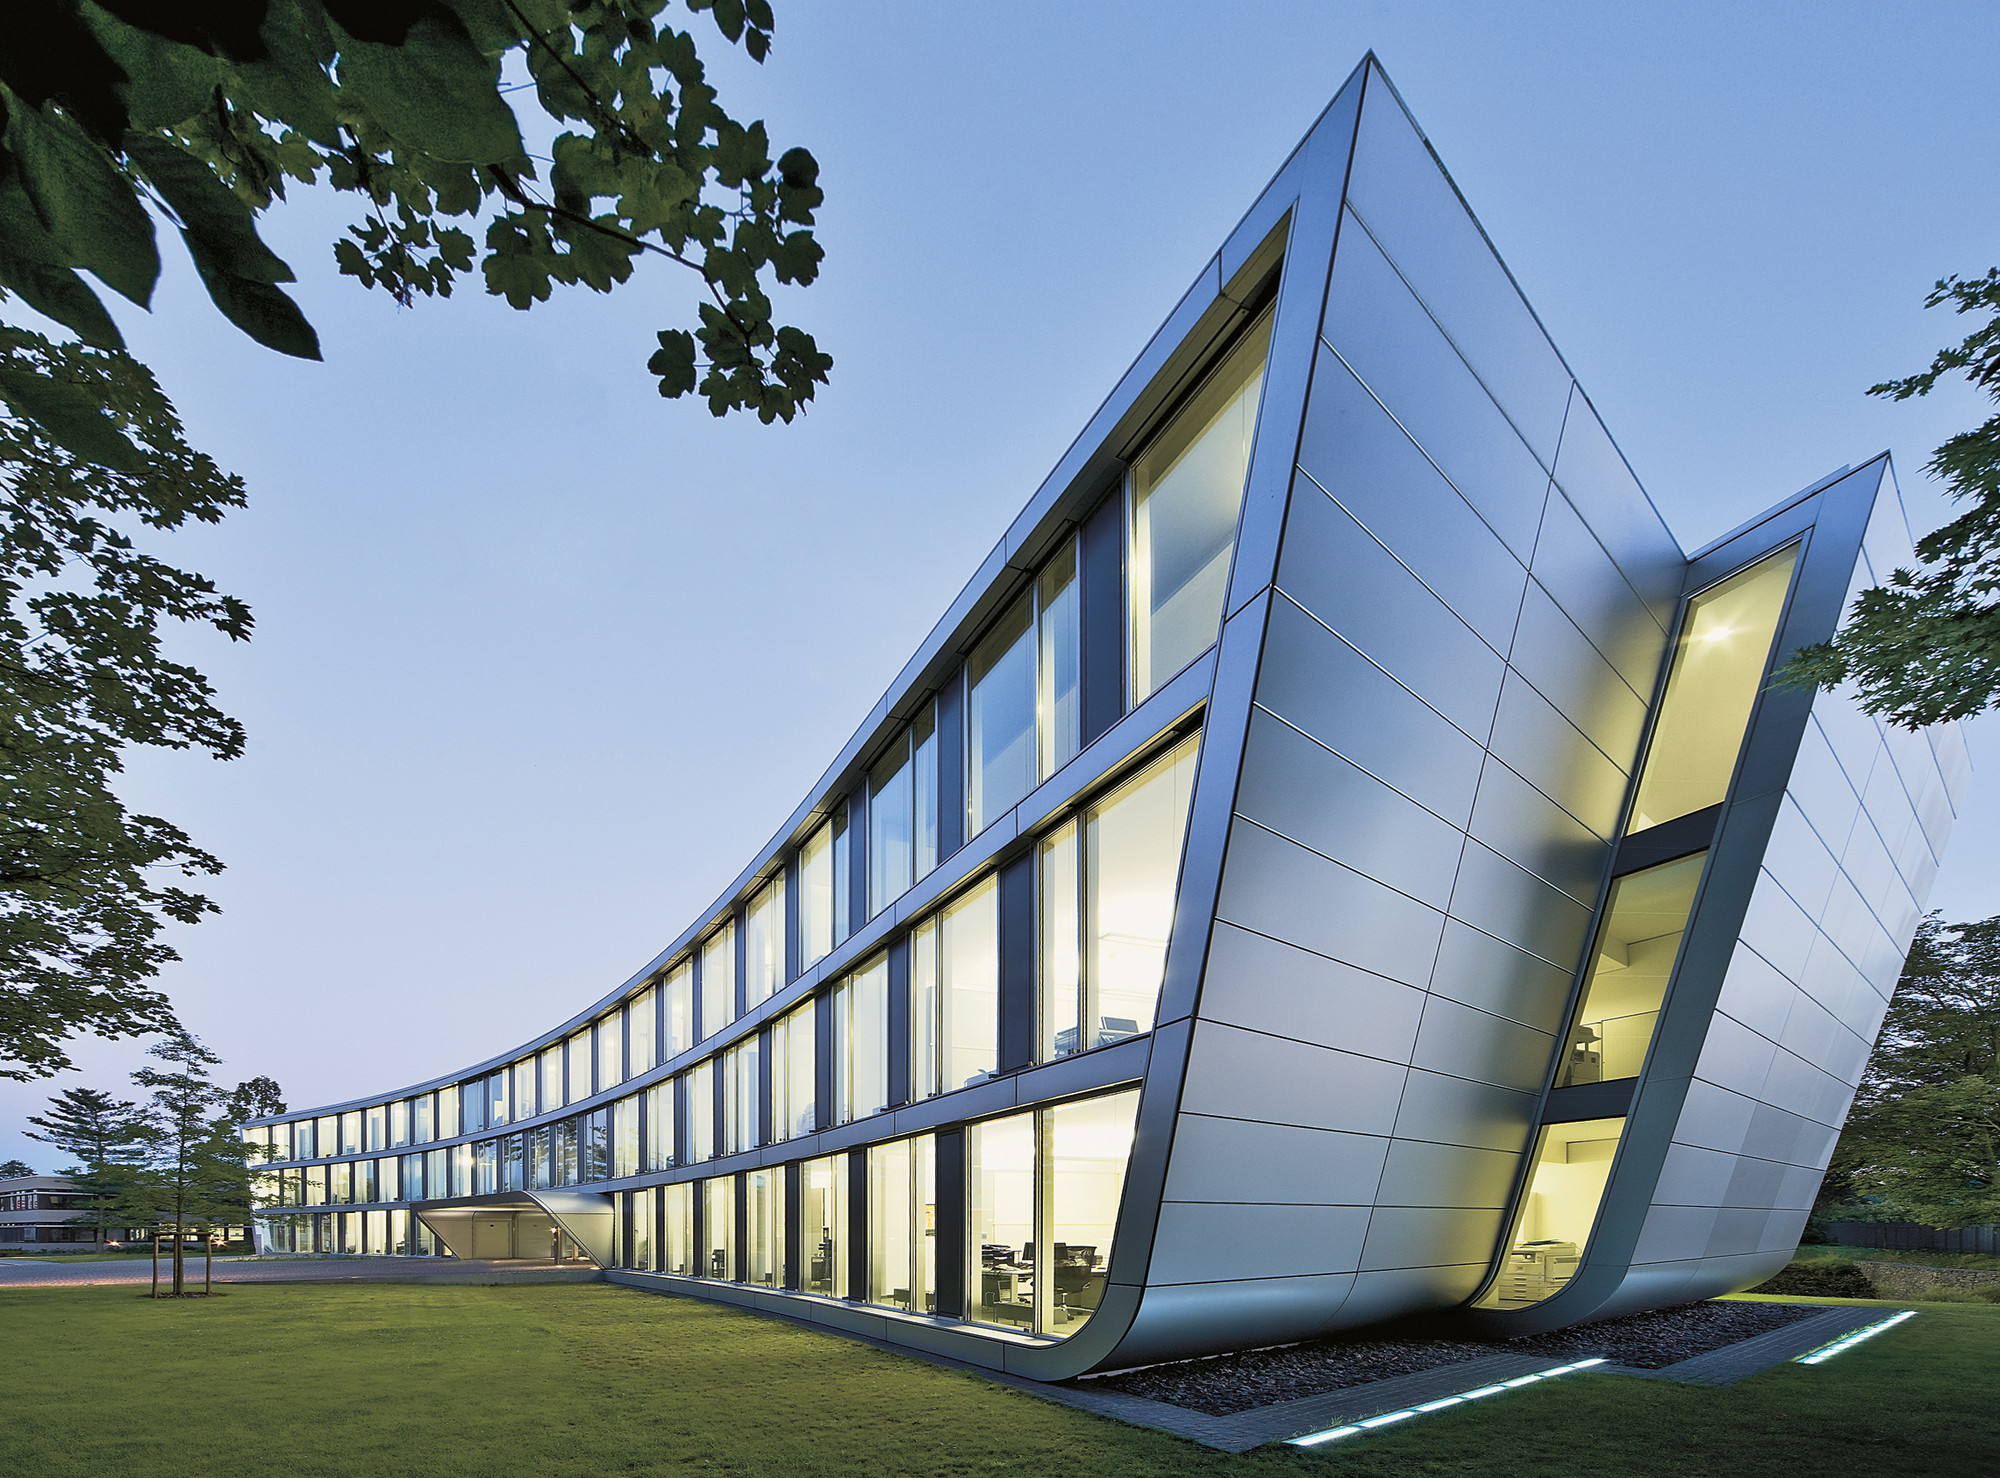 Architekt Neuss Wye Eike Becker Architekten Archdaily